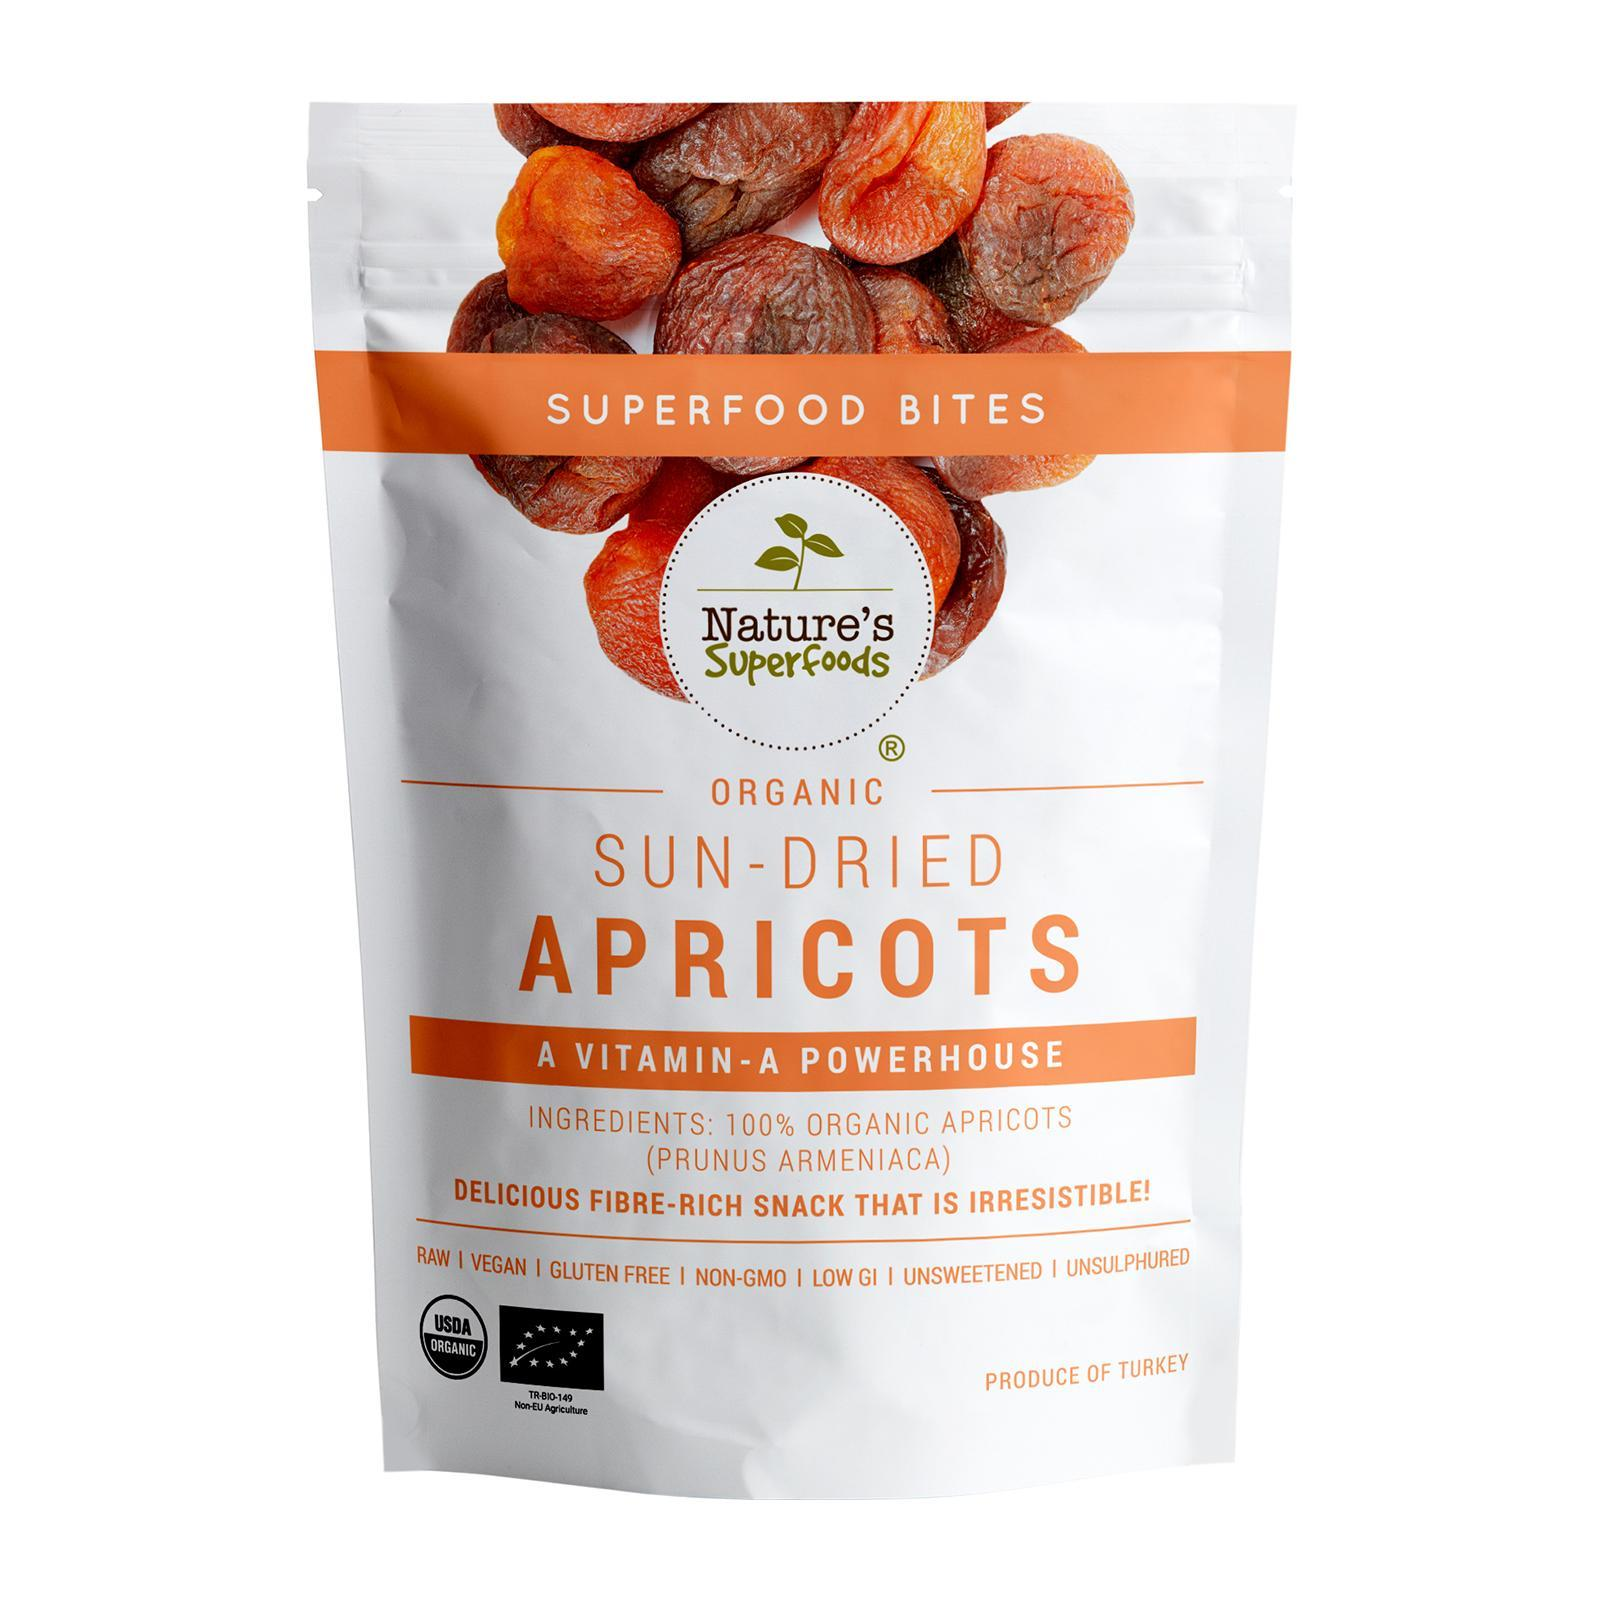 Nature's Superfoods Organic Sun-Dried Apricots